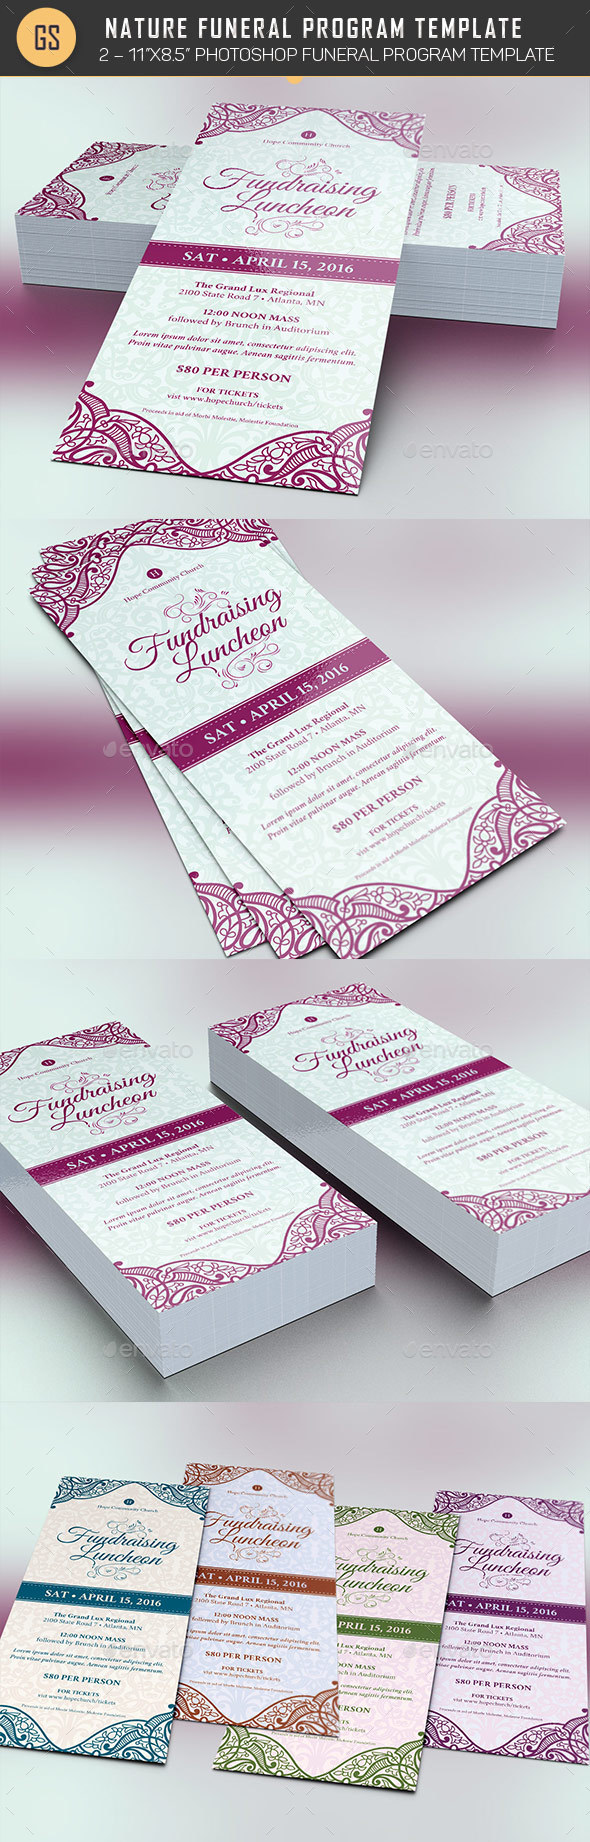 Fundraising Luncheon Flyer Template | Flyer template, Fundraising ...